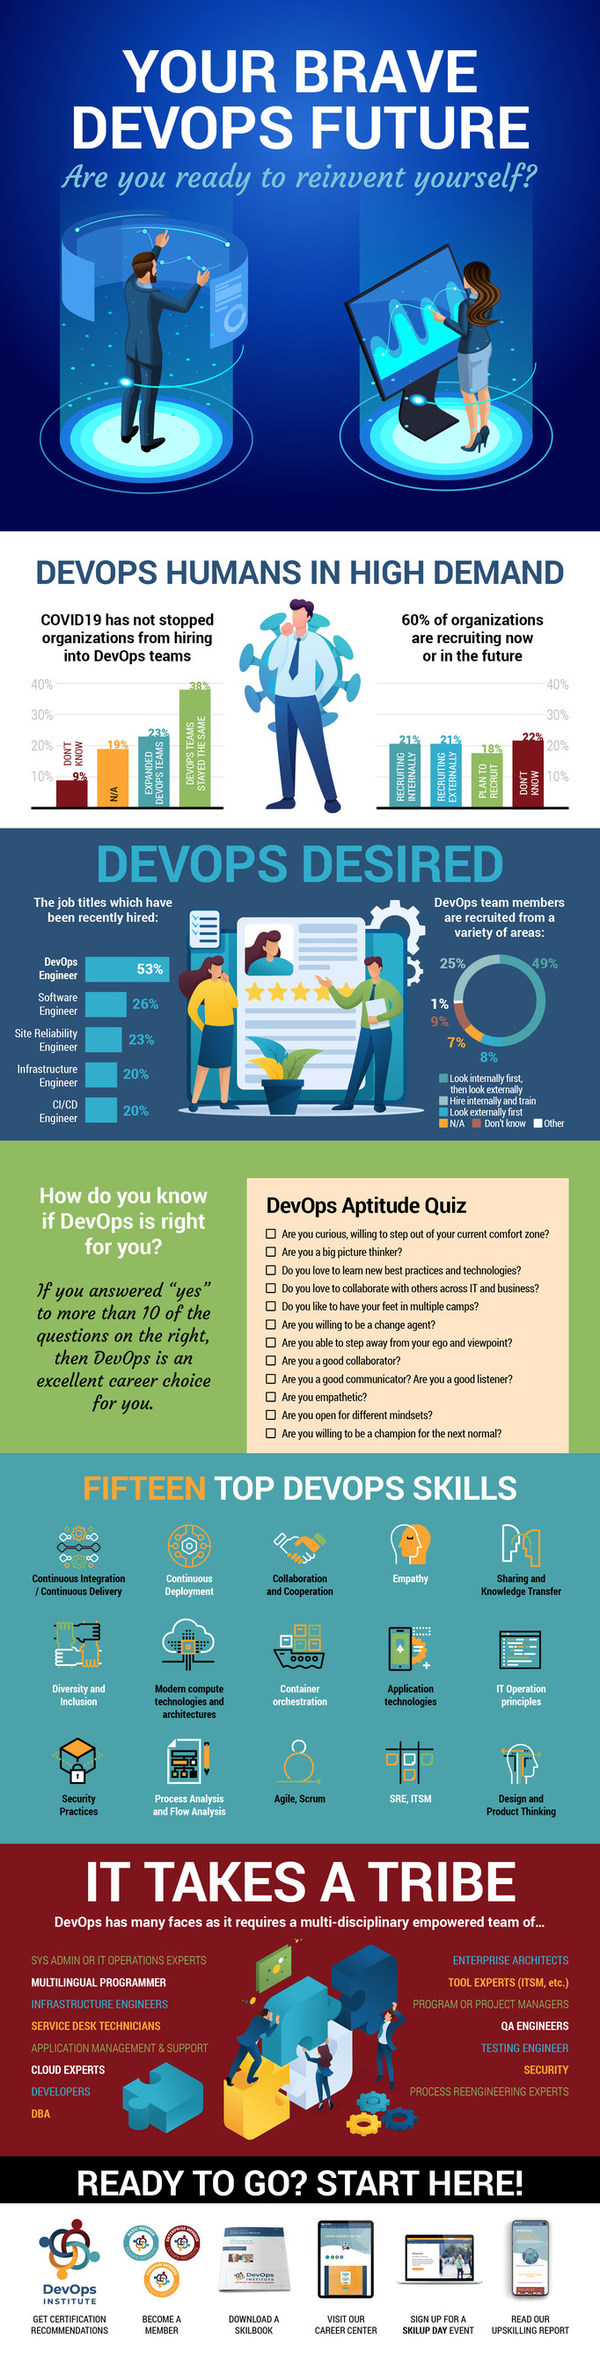 DevOps Institute Announces the 'Upskilling 2021: Enterprise DevOps Skills Report'